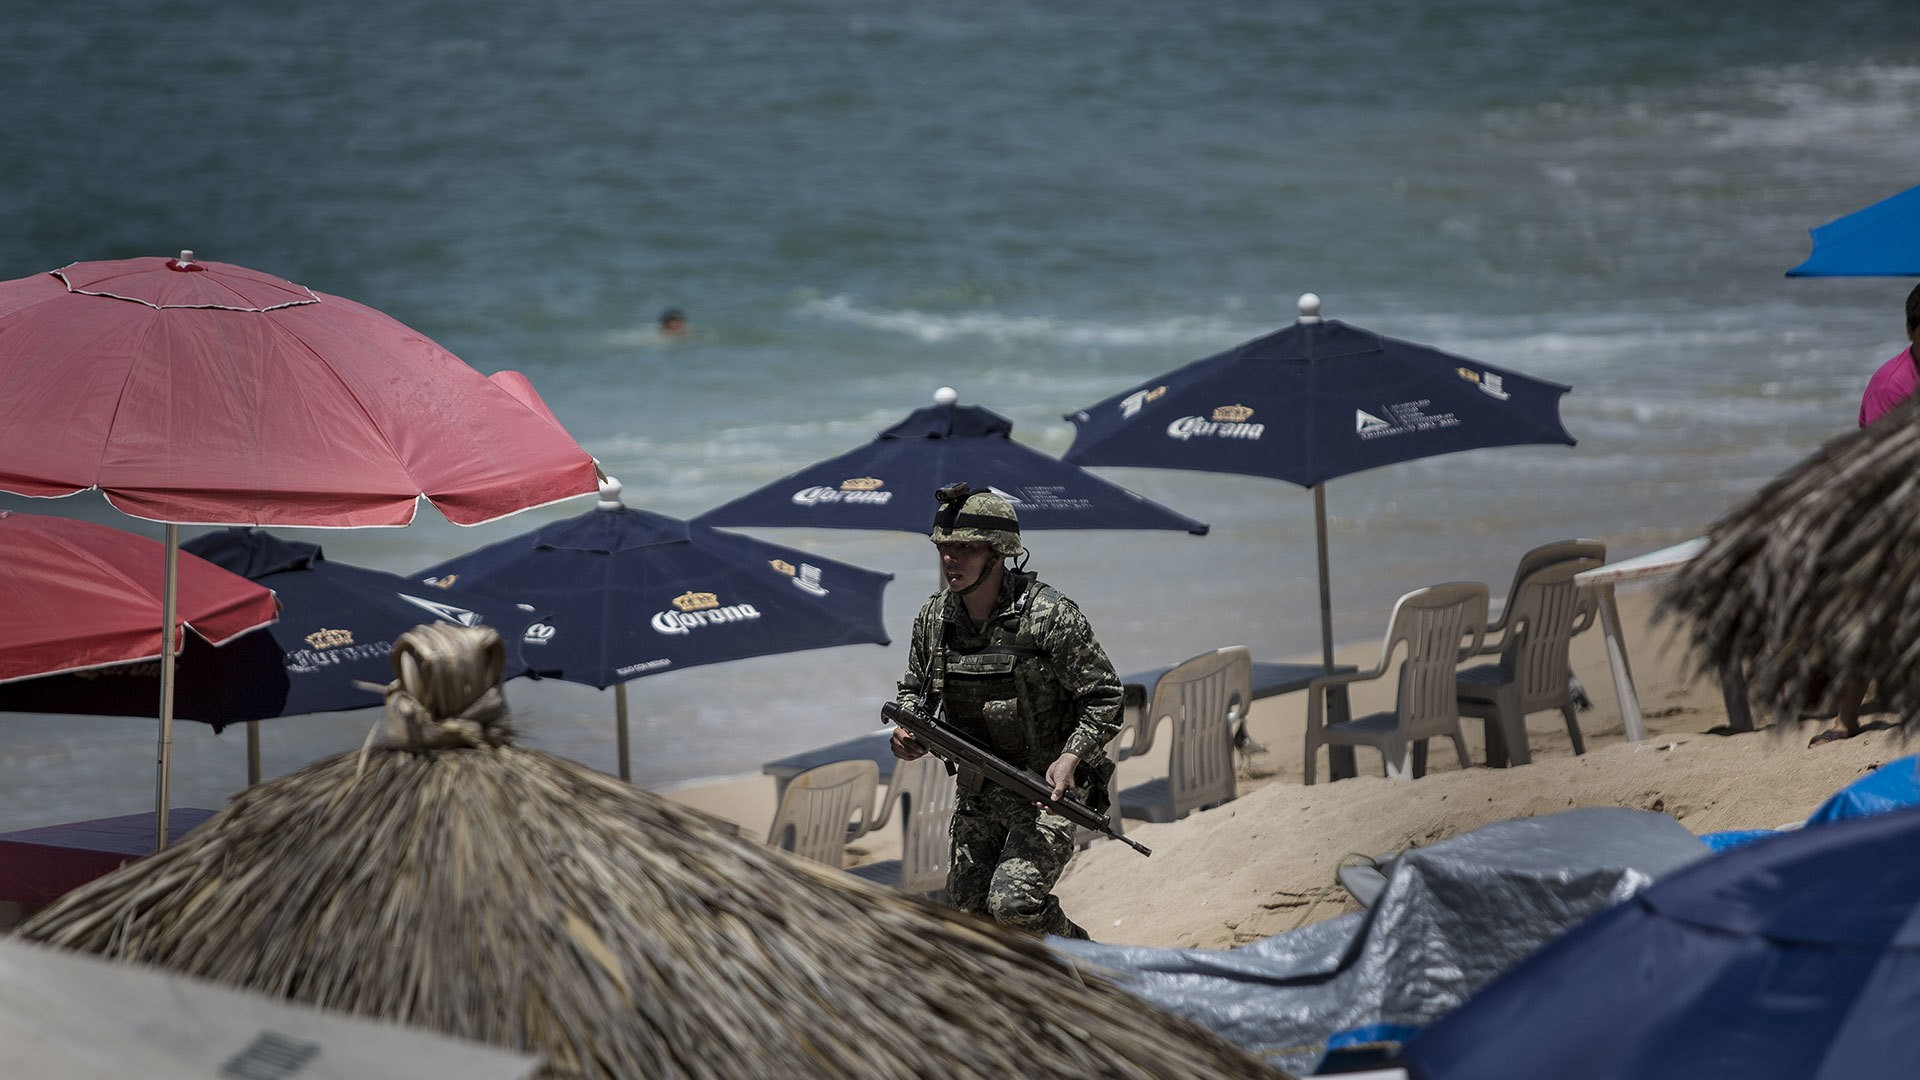 Ten years into Mexico's drug war, the violence in Acapulco rages on